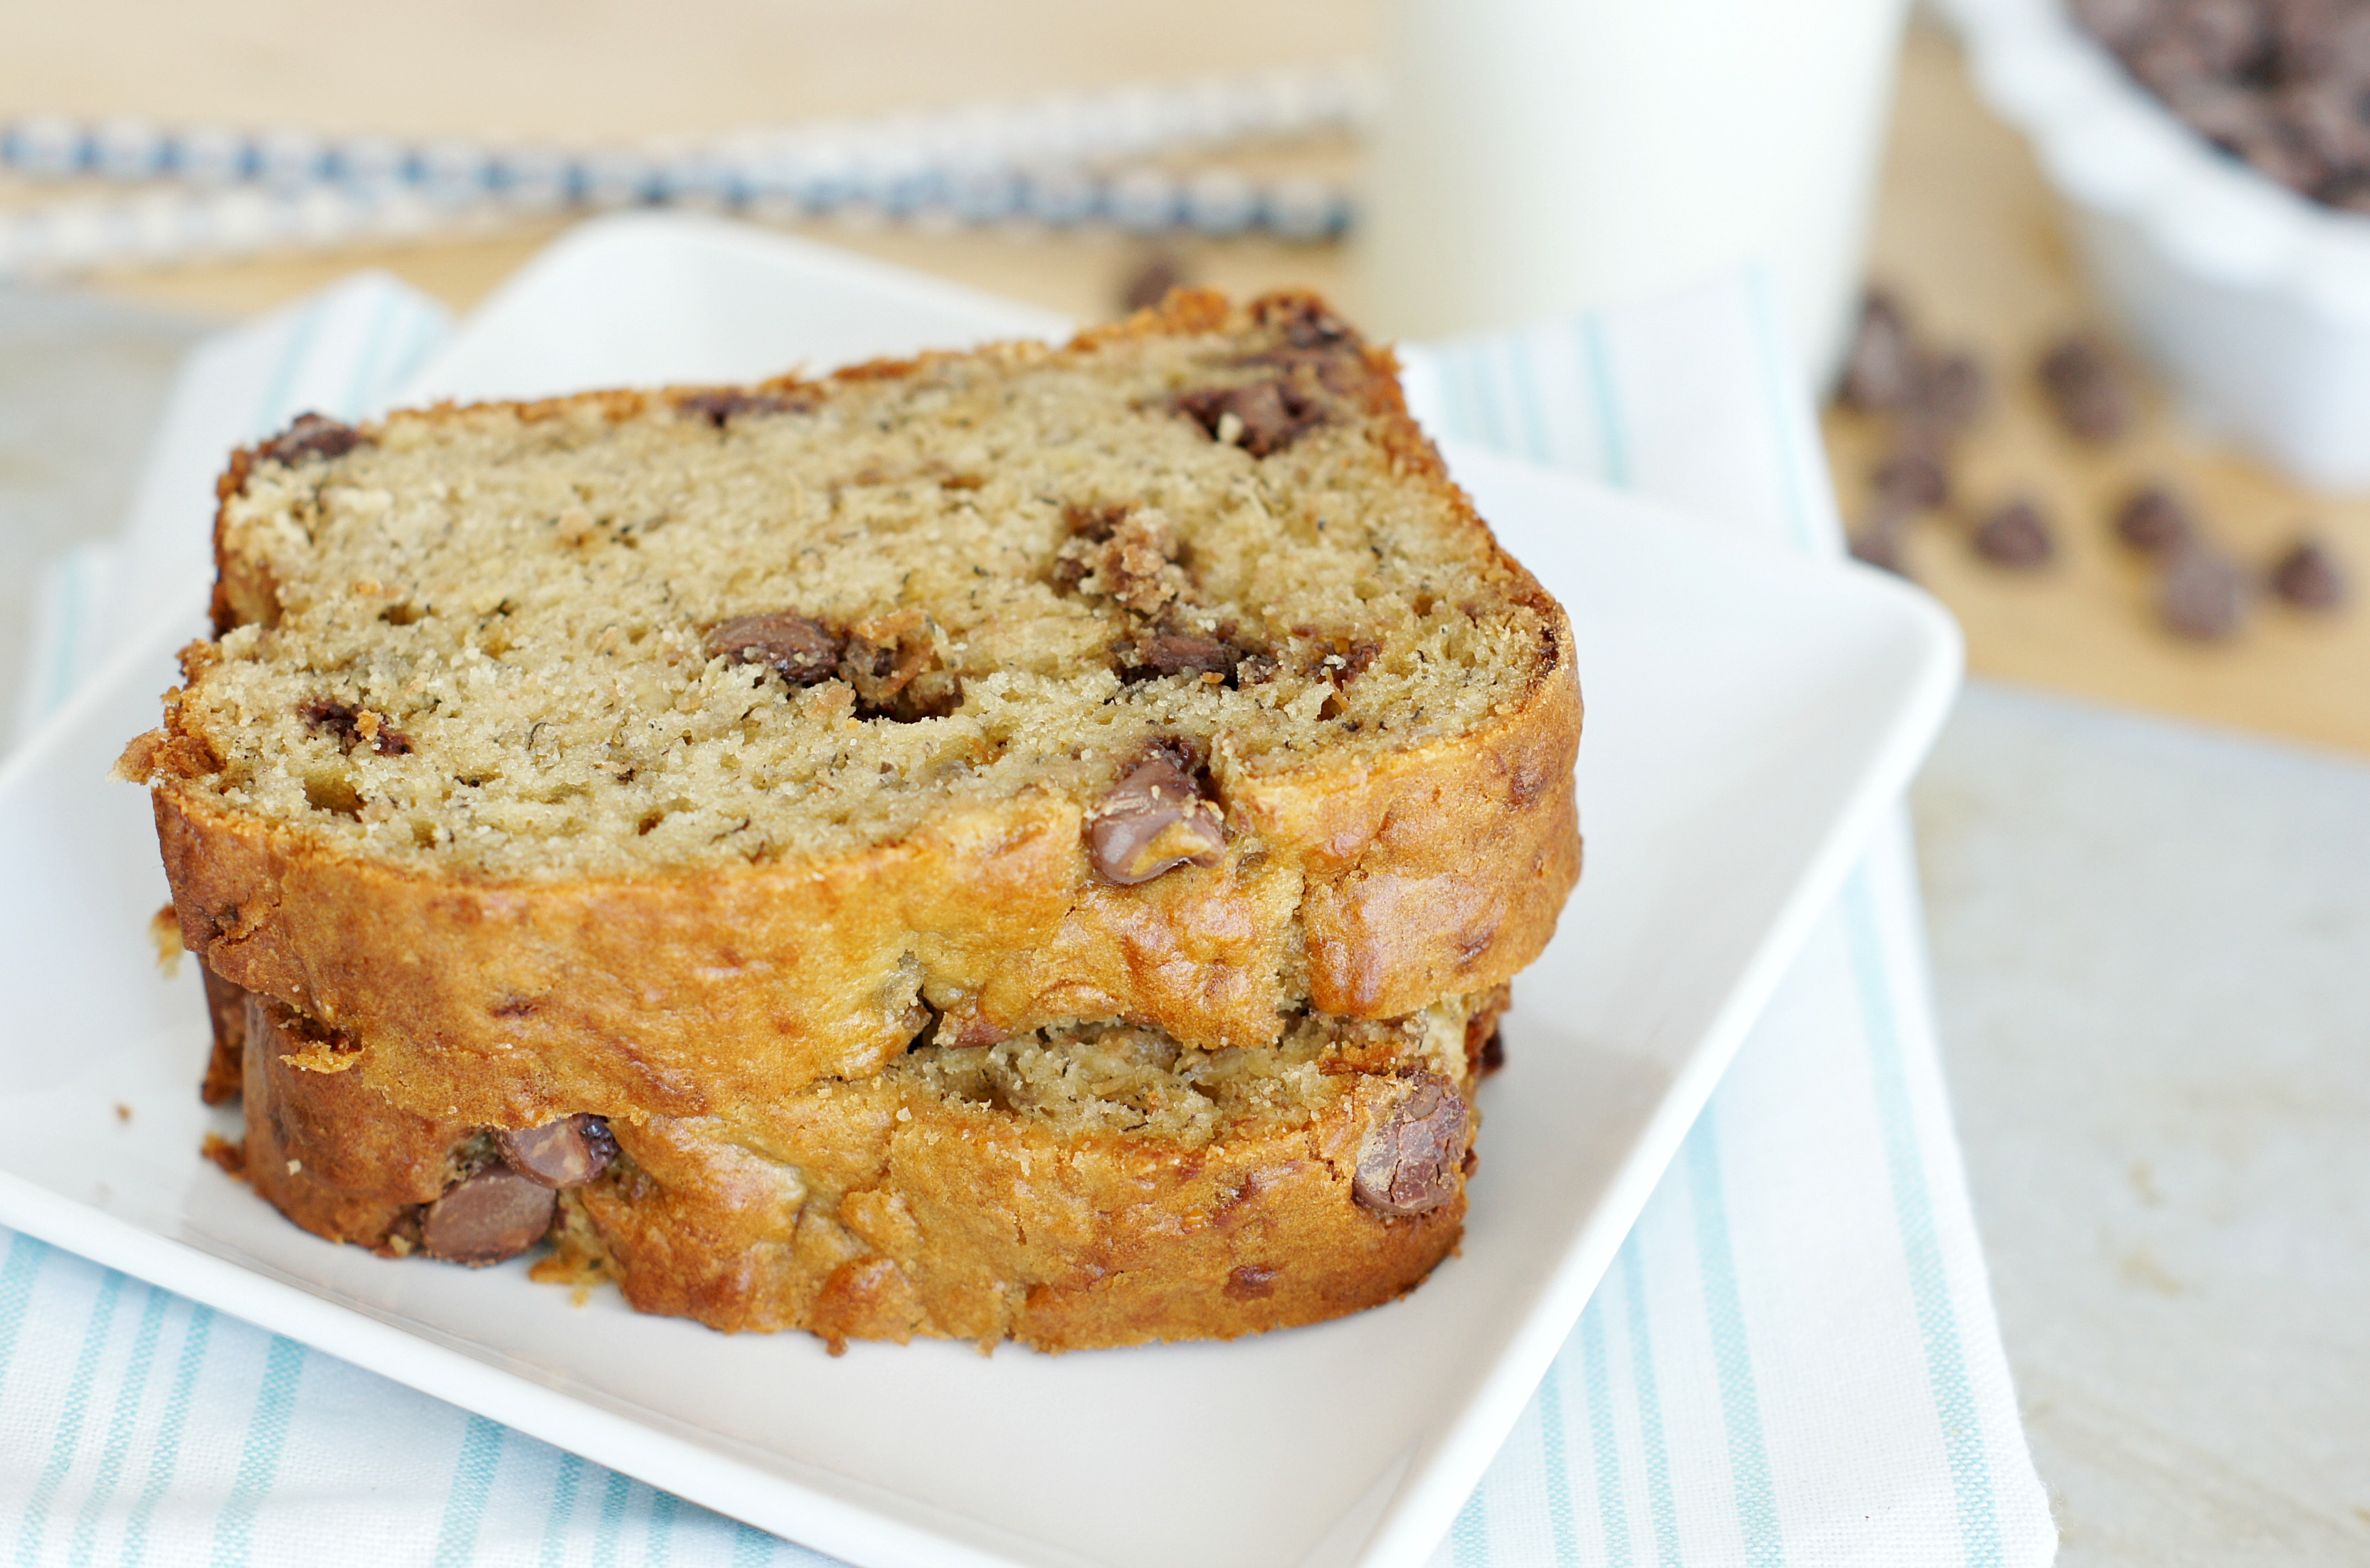 Peanut Butter Banana Bread with Chocolate Chips - 5BoysBaker